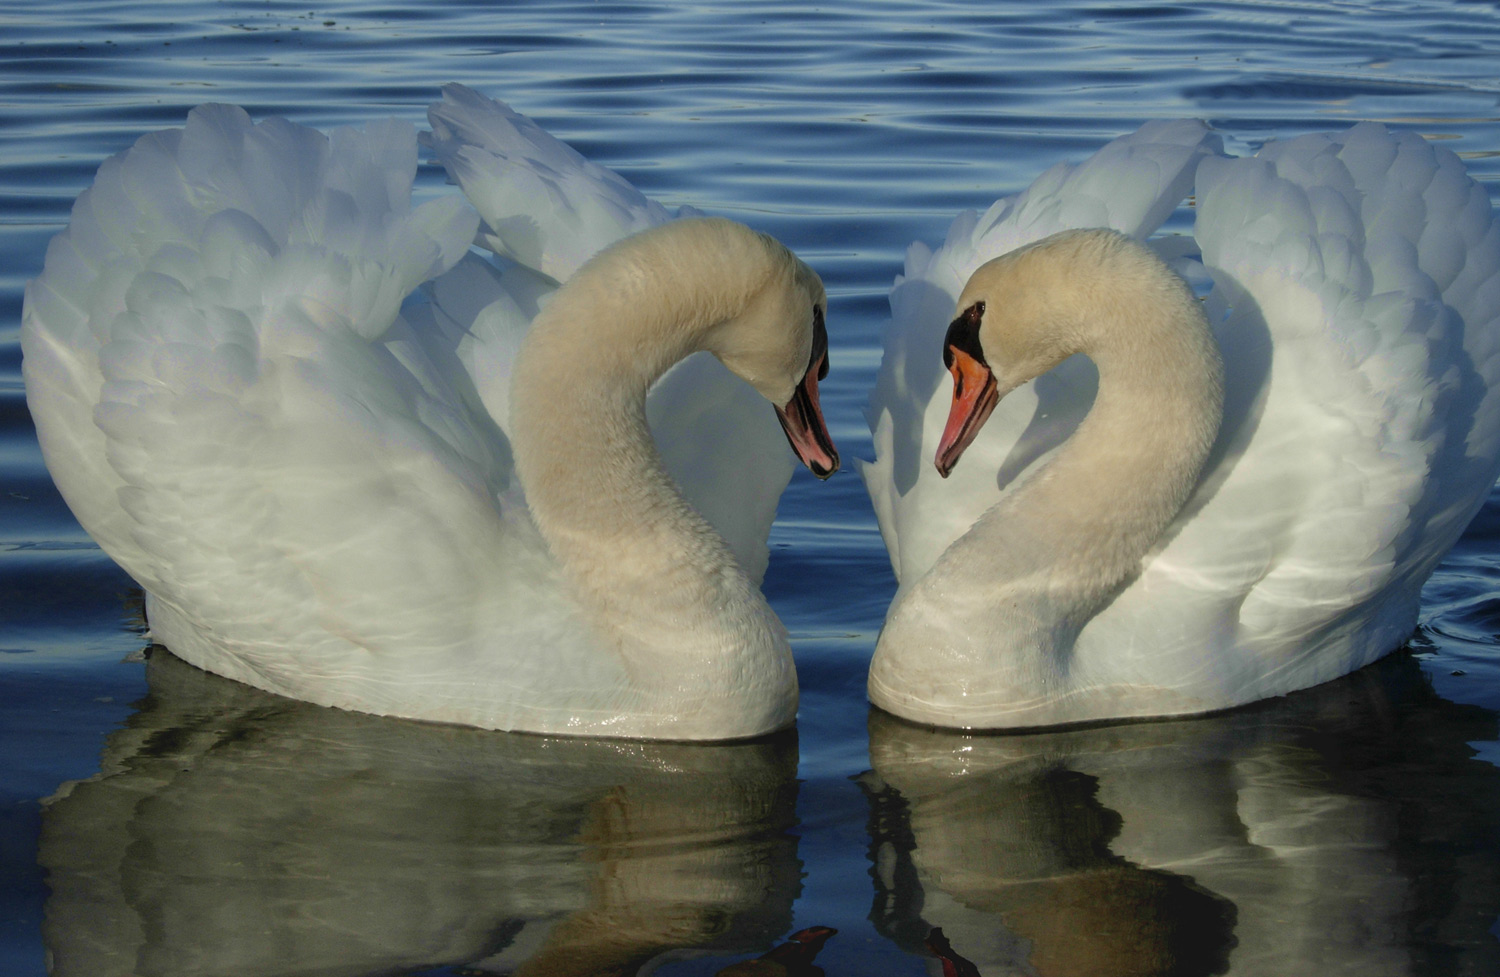 Two white swans with orange beaks on water, facing each other with necks arched and wings curved